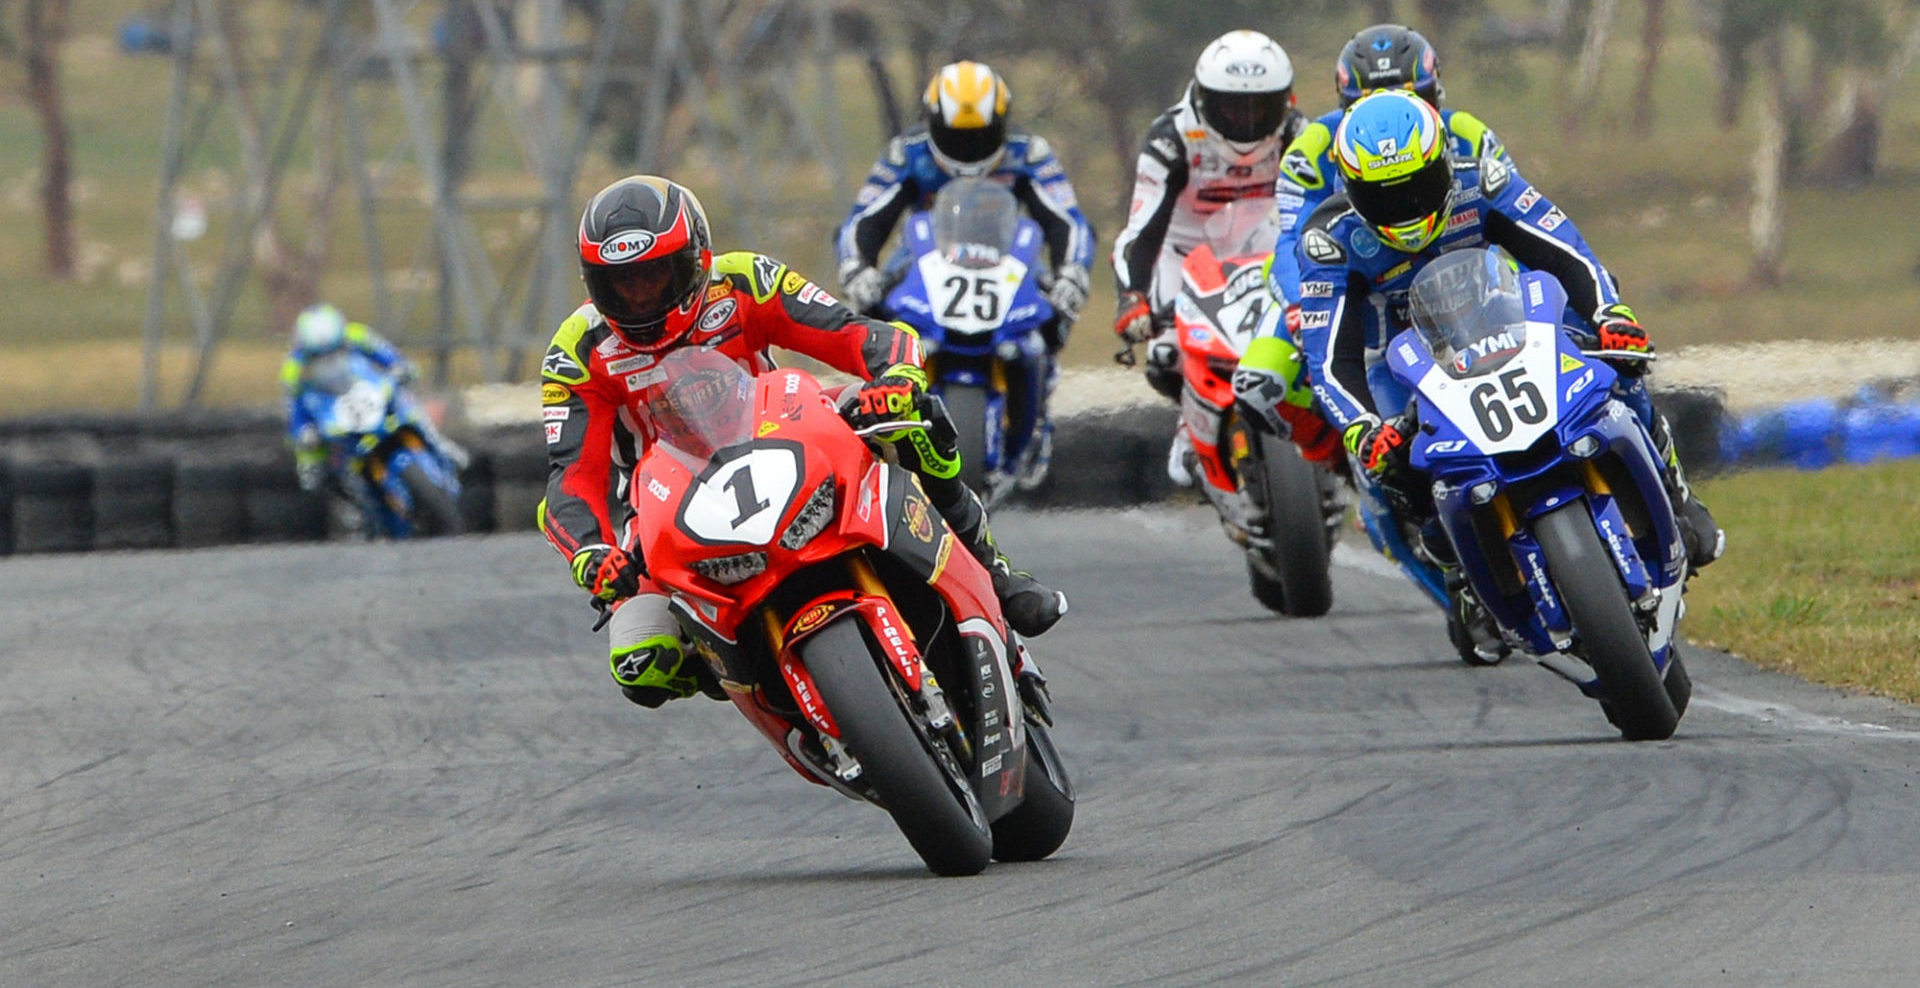 Former Australian Superbike Champion Troy Herfoss (1) leads Cru Halliday (65) and the rest of the Australian Superbike field at Wakefield Park in 2019. Photo by Russell Colvin, courtesy of Motorcycling Australia.